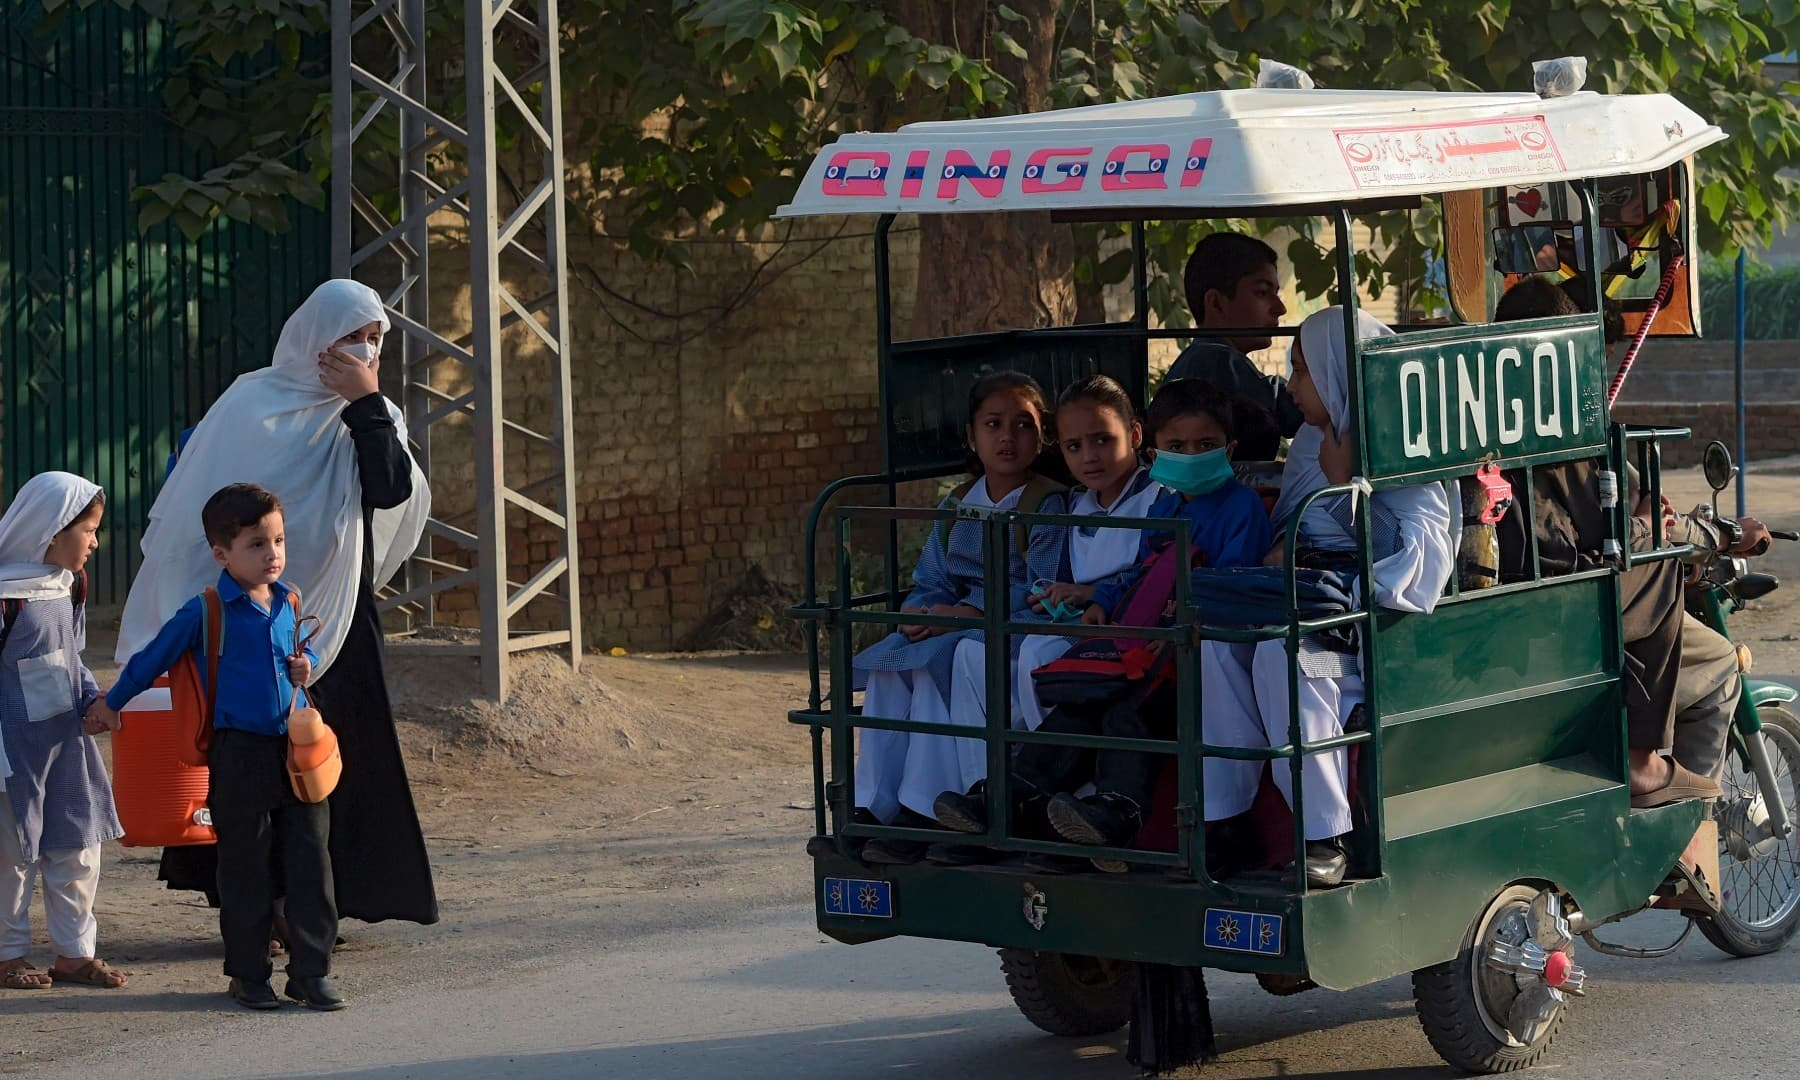 Students ride on a three-wheeler vehicle on way to their school in Peshawar on September 15. — AFP